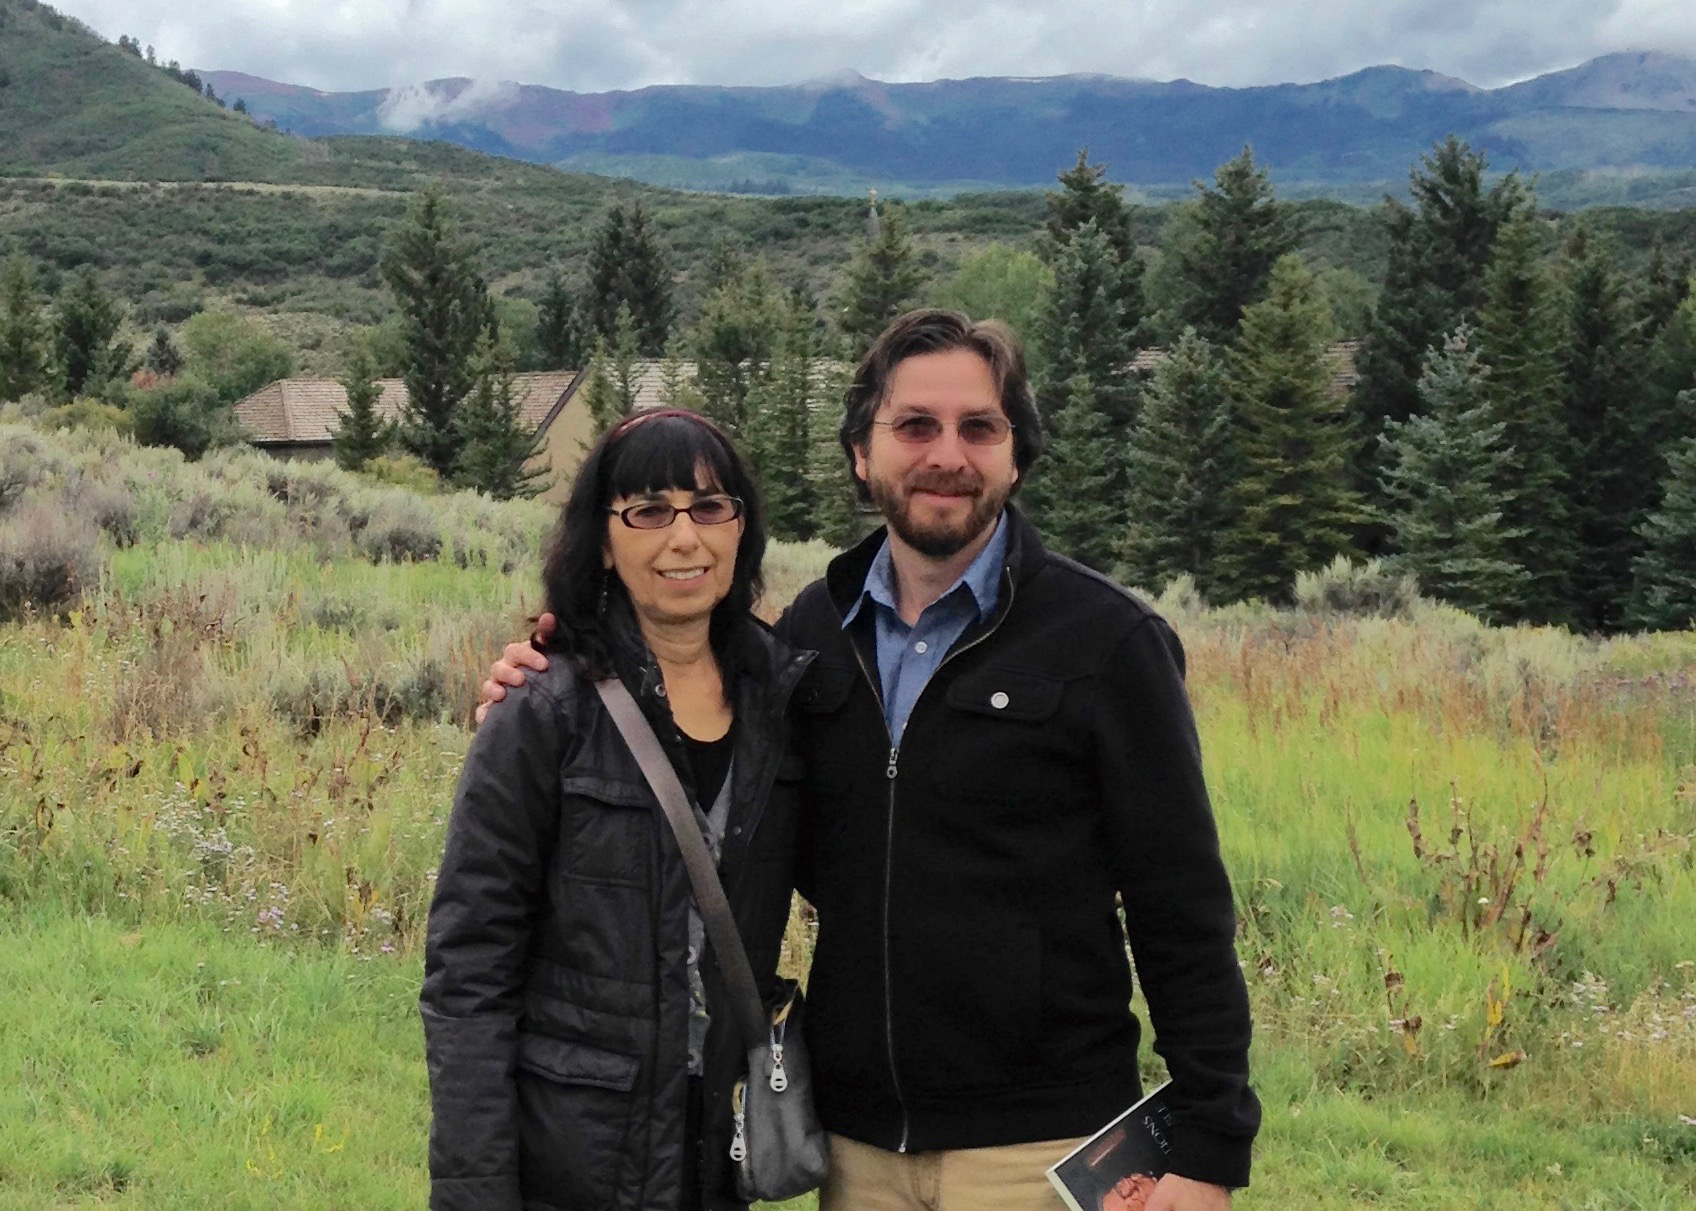 Beverly Lanzetta and Netanel Miles-Yépez at St. Benedict's Monastery, Snowmass, CO.  (J. Phares, 2014)